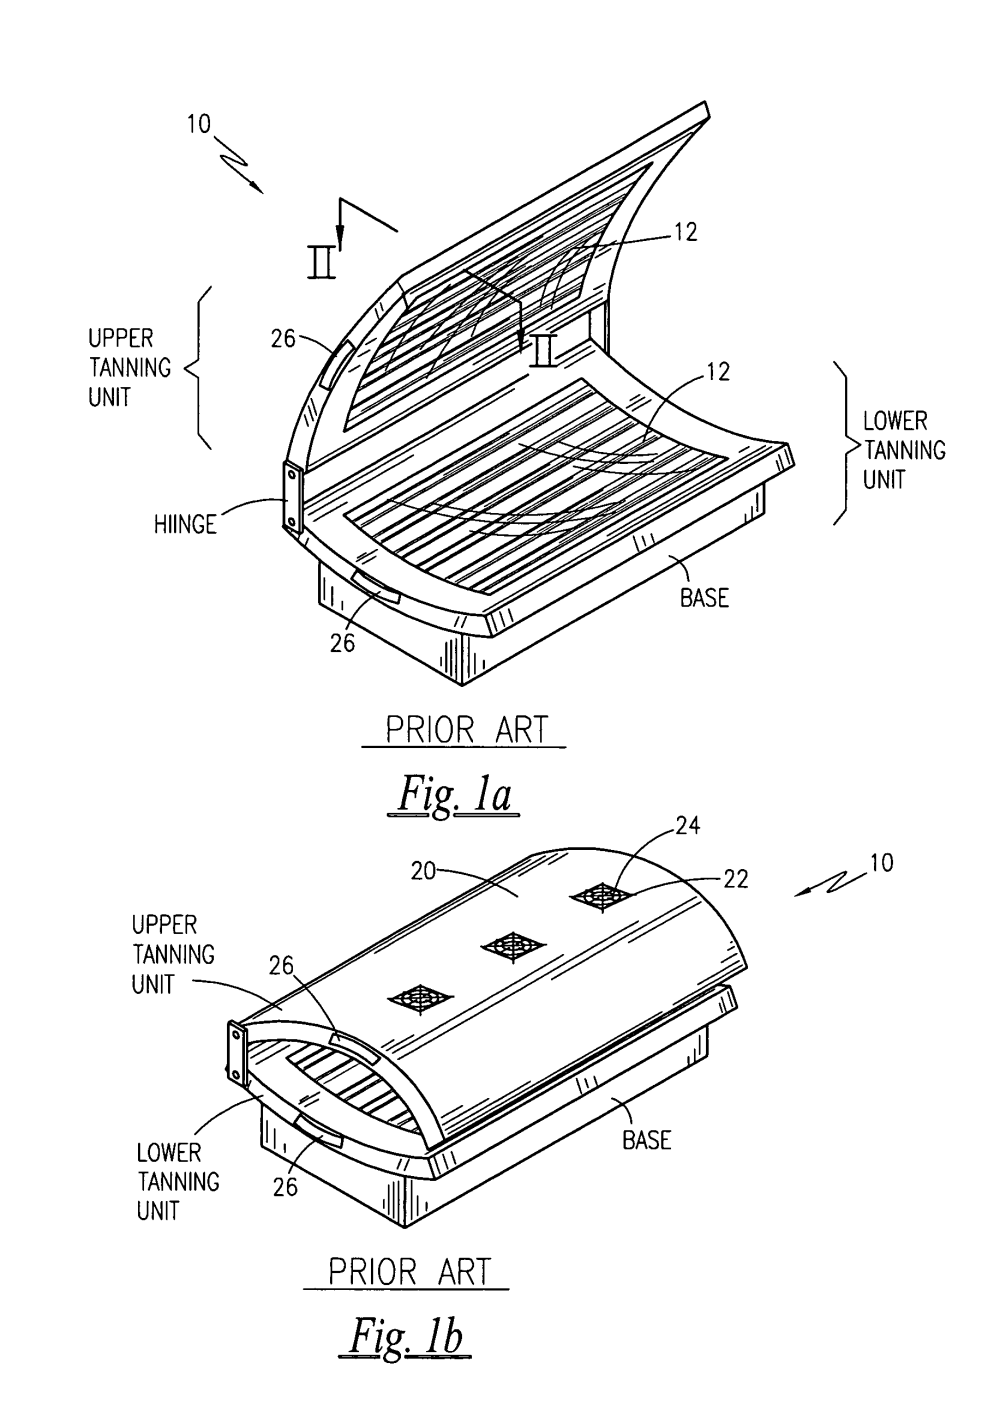 medium resolution of patent us8157849 tanning bed with an air filter google patentstanning bed google patents on tanning bed